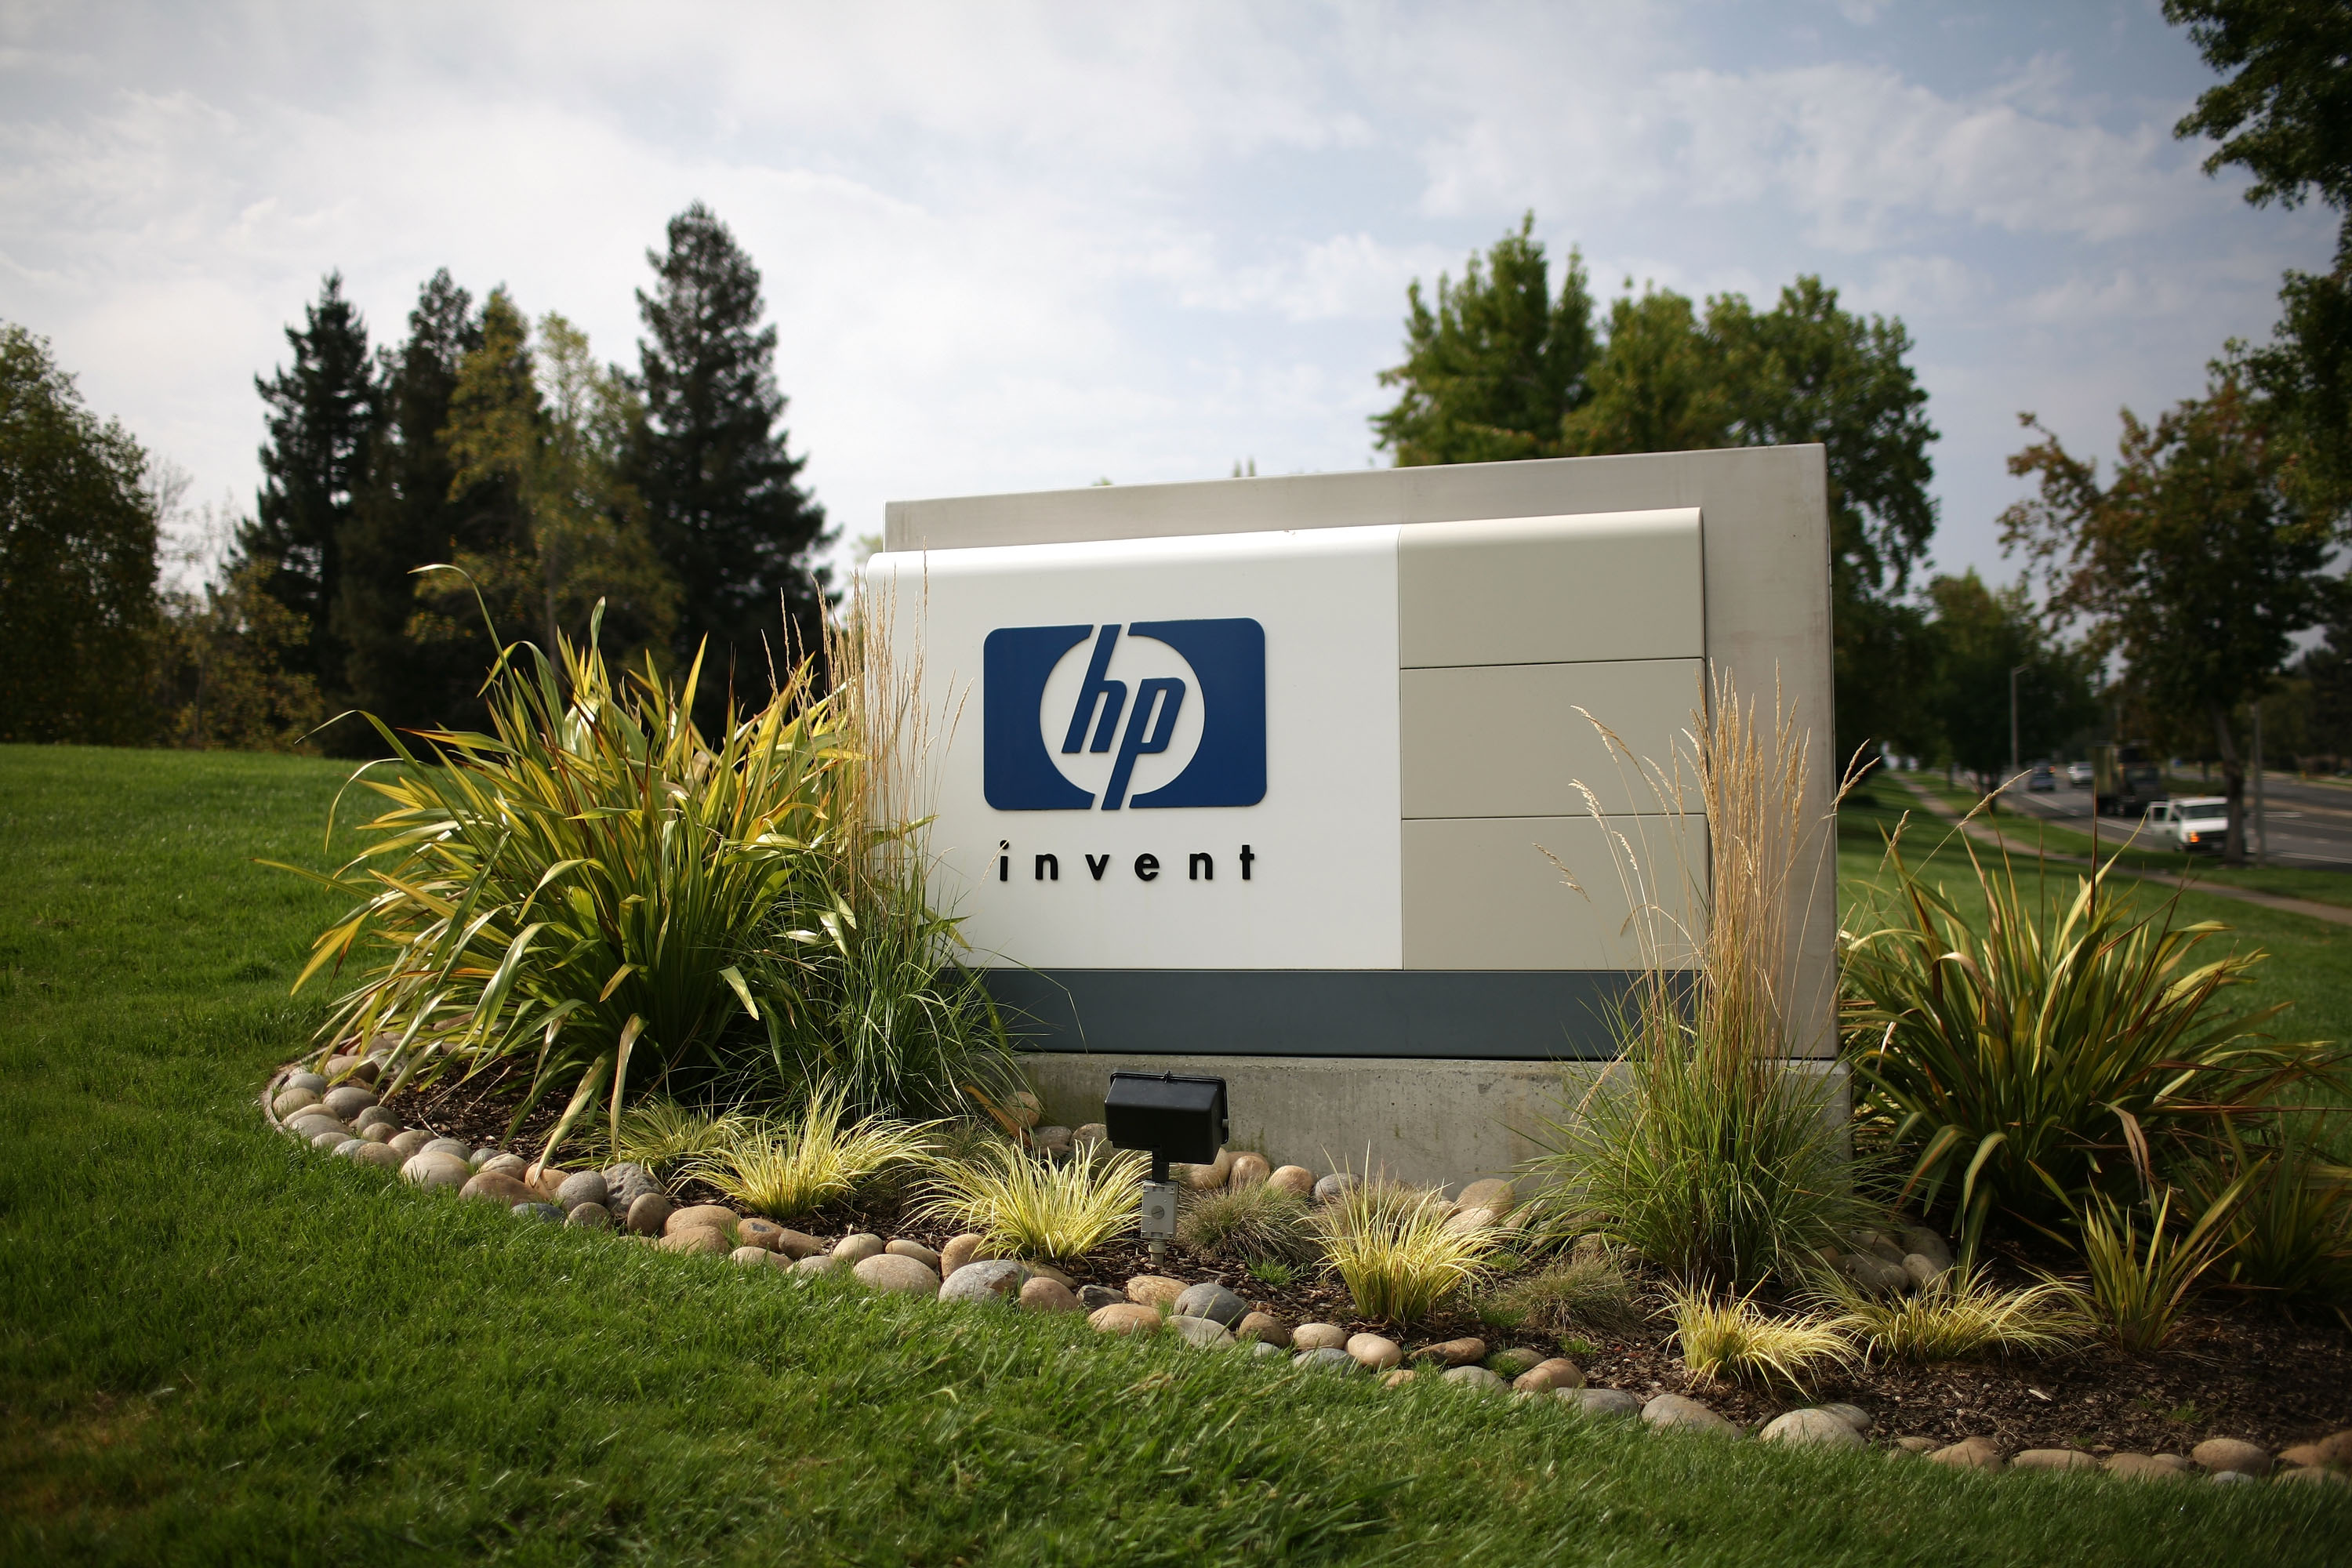 HP Exec Says Firm Is Developing a New Smartphone